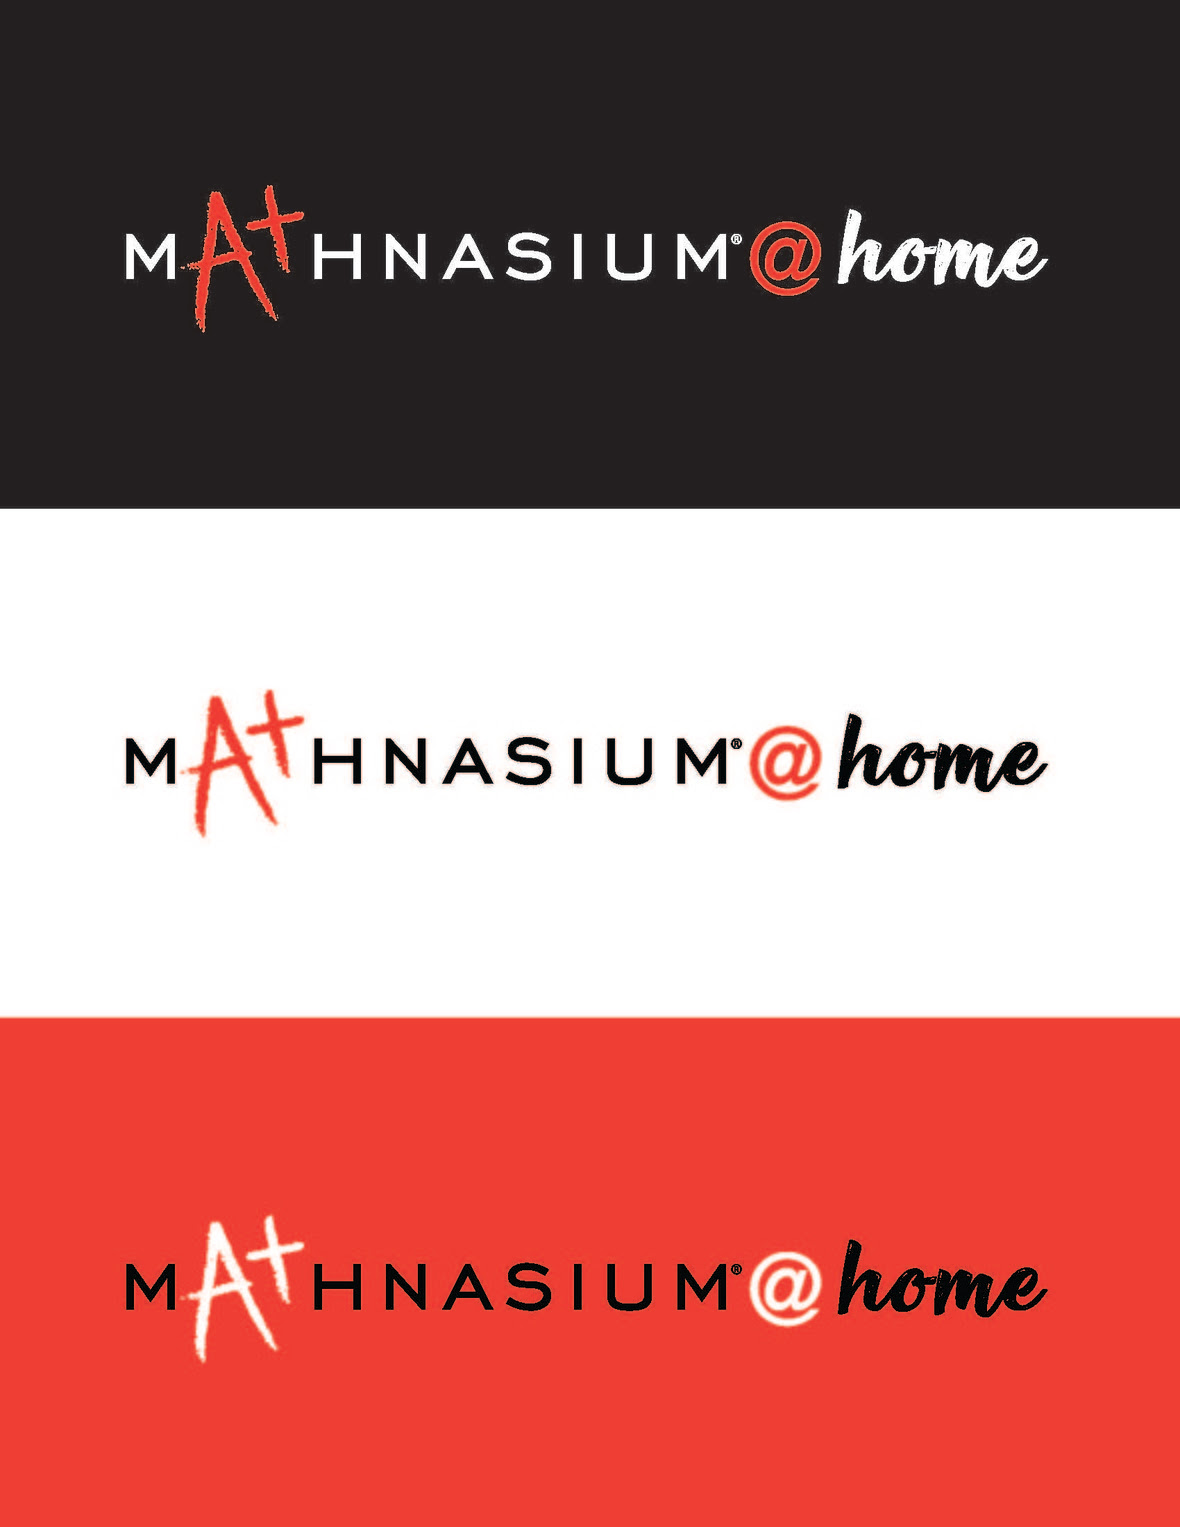 CA 2020 Mathnasium home Logo Design FINAL